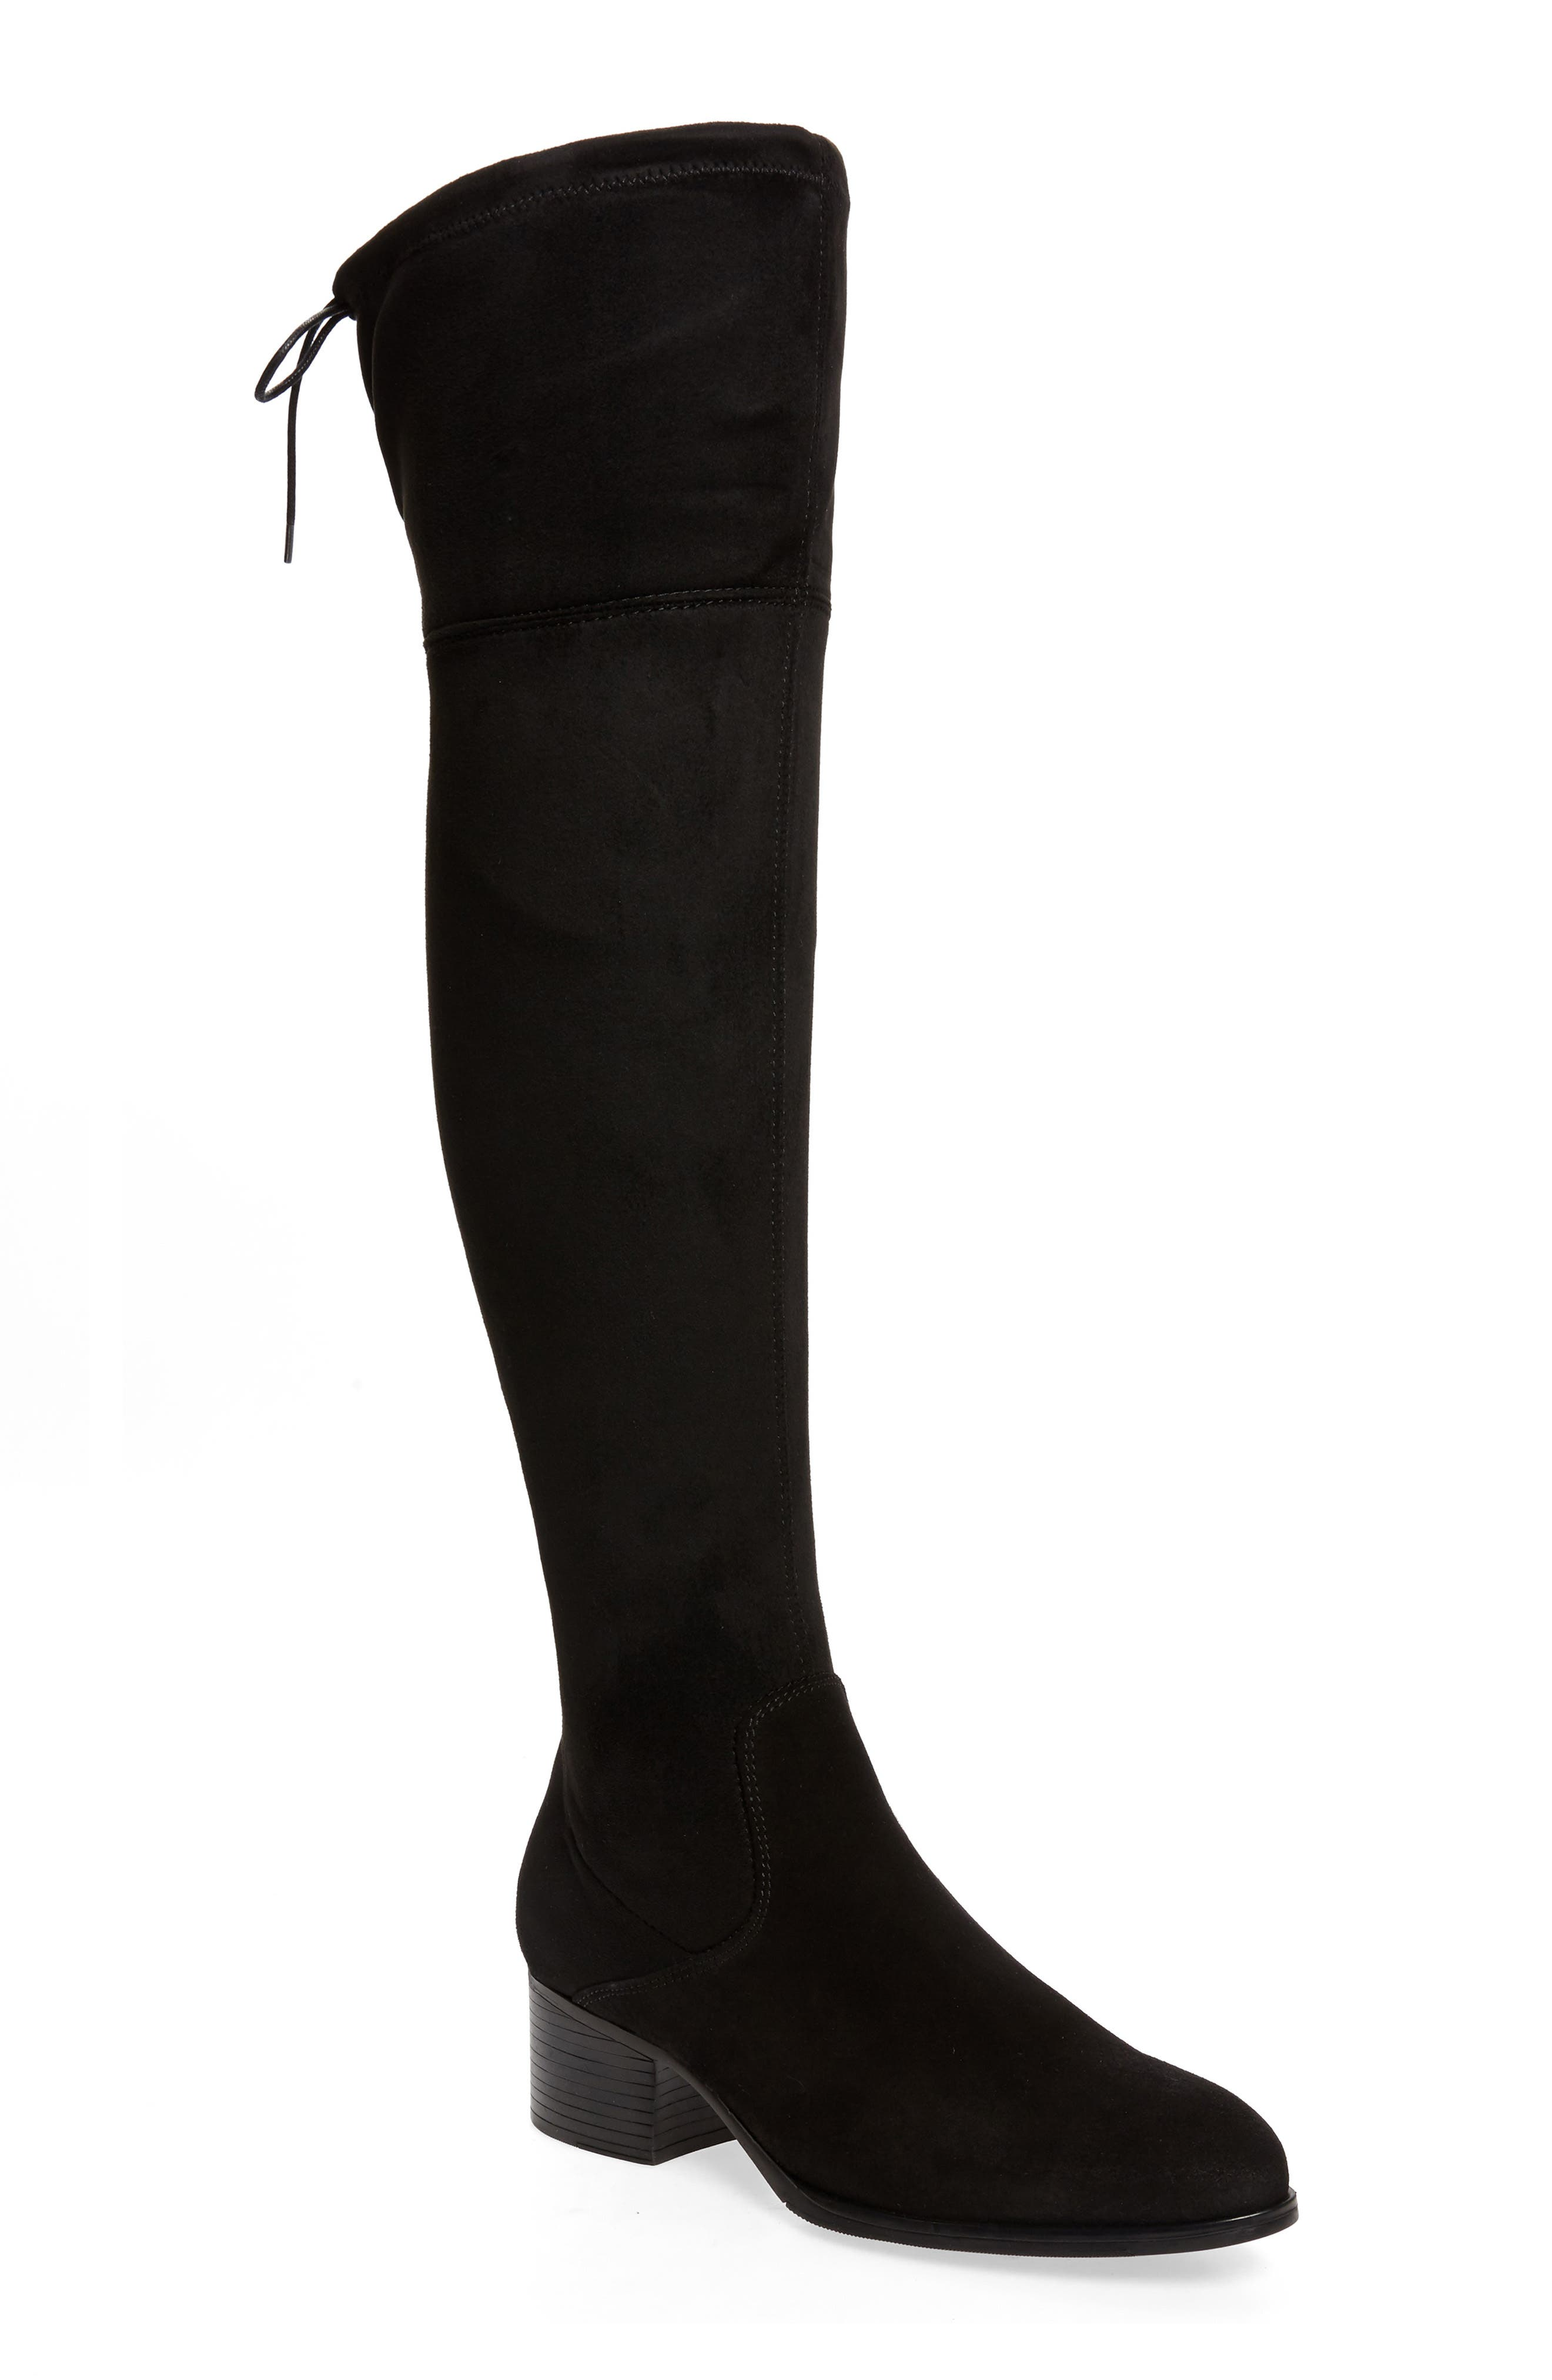 Beat the weather while staying on trend in this luxe over-the-knee boot with a waterproof exterior and an Aquastop breathable, water-repellent backing. Style Name: Bos. & Co. Rewind Waterproof Over The Knee Boot (Women) (Narrow Calf). Style Number: 6086144. Available in stores.